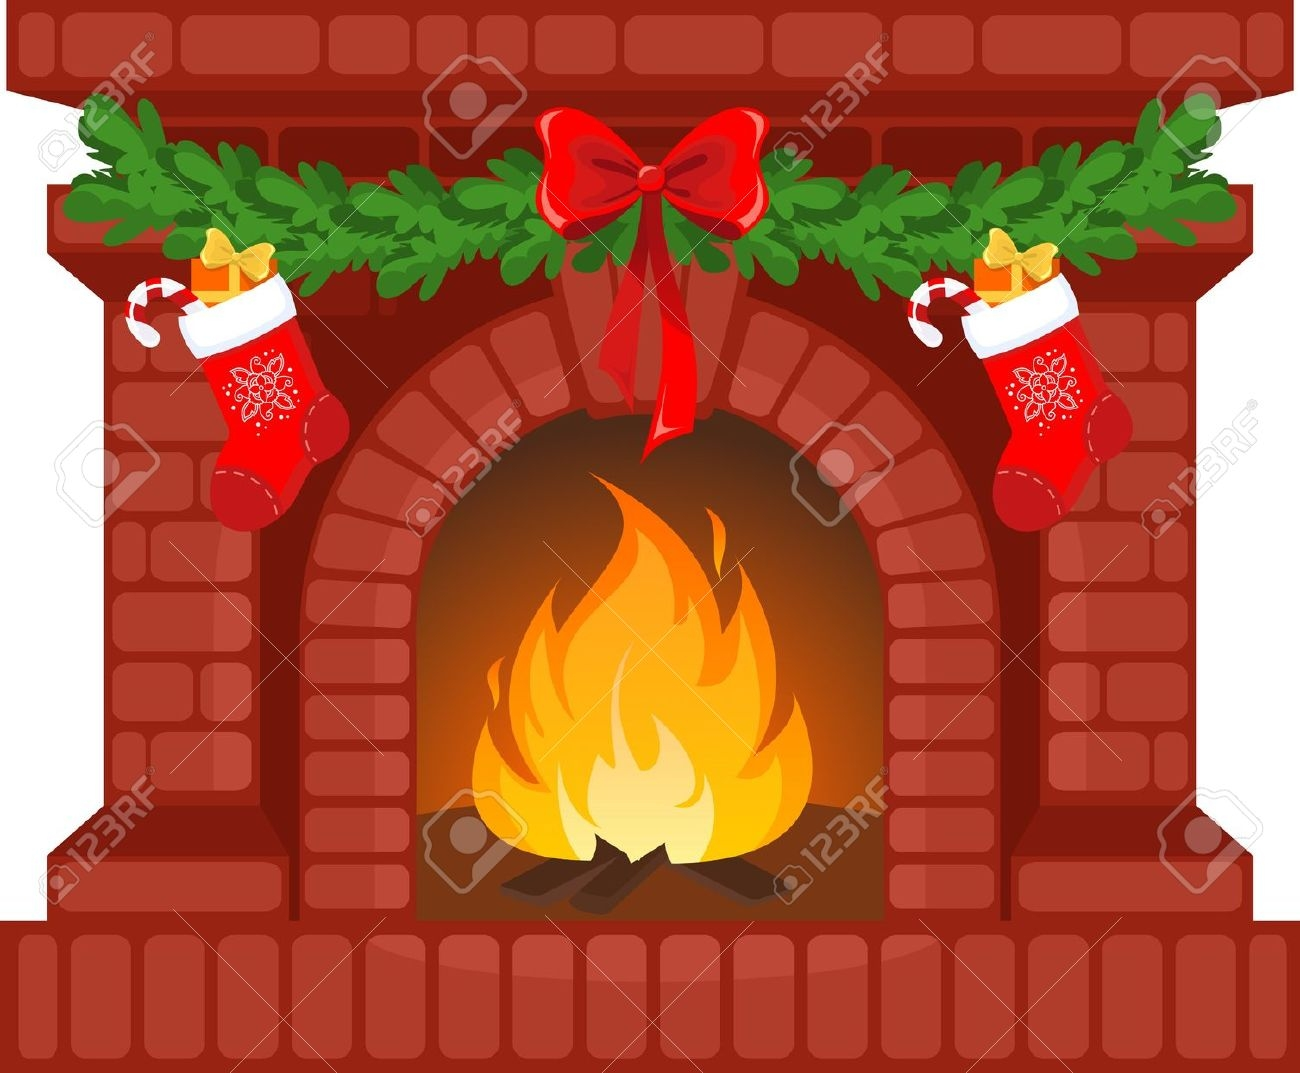 Fireplace Clipart Pictures Idea-Fireplace clipart pictures idea-17